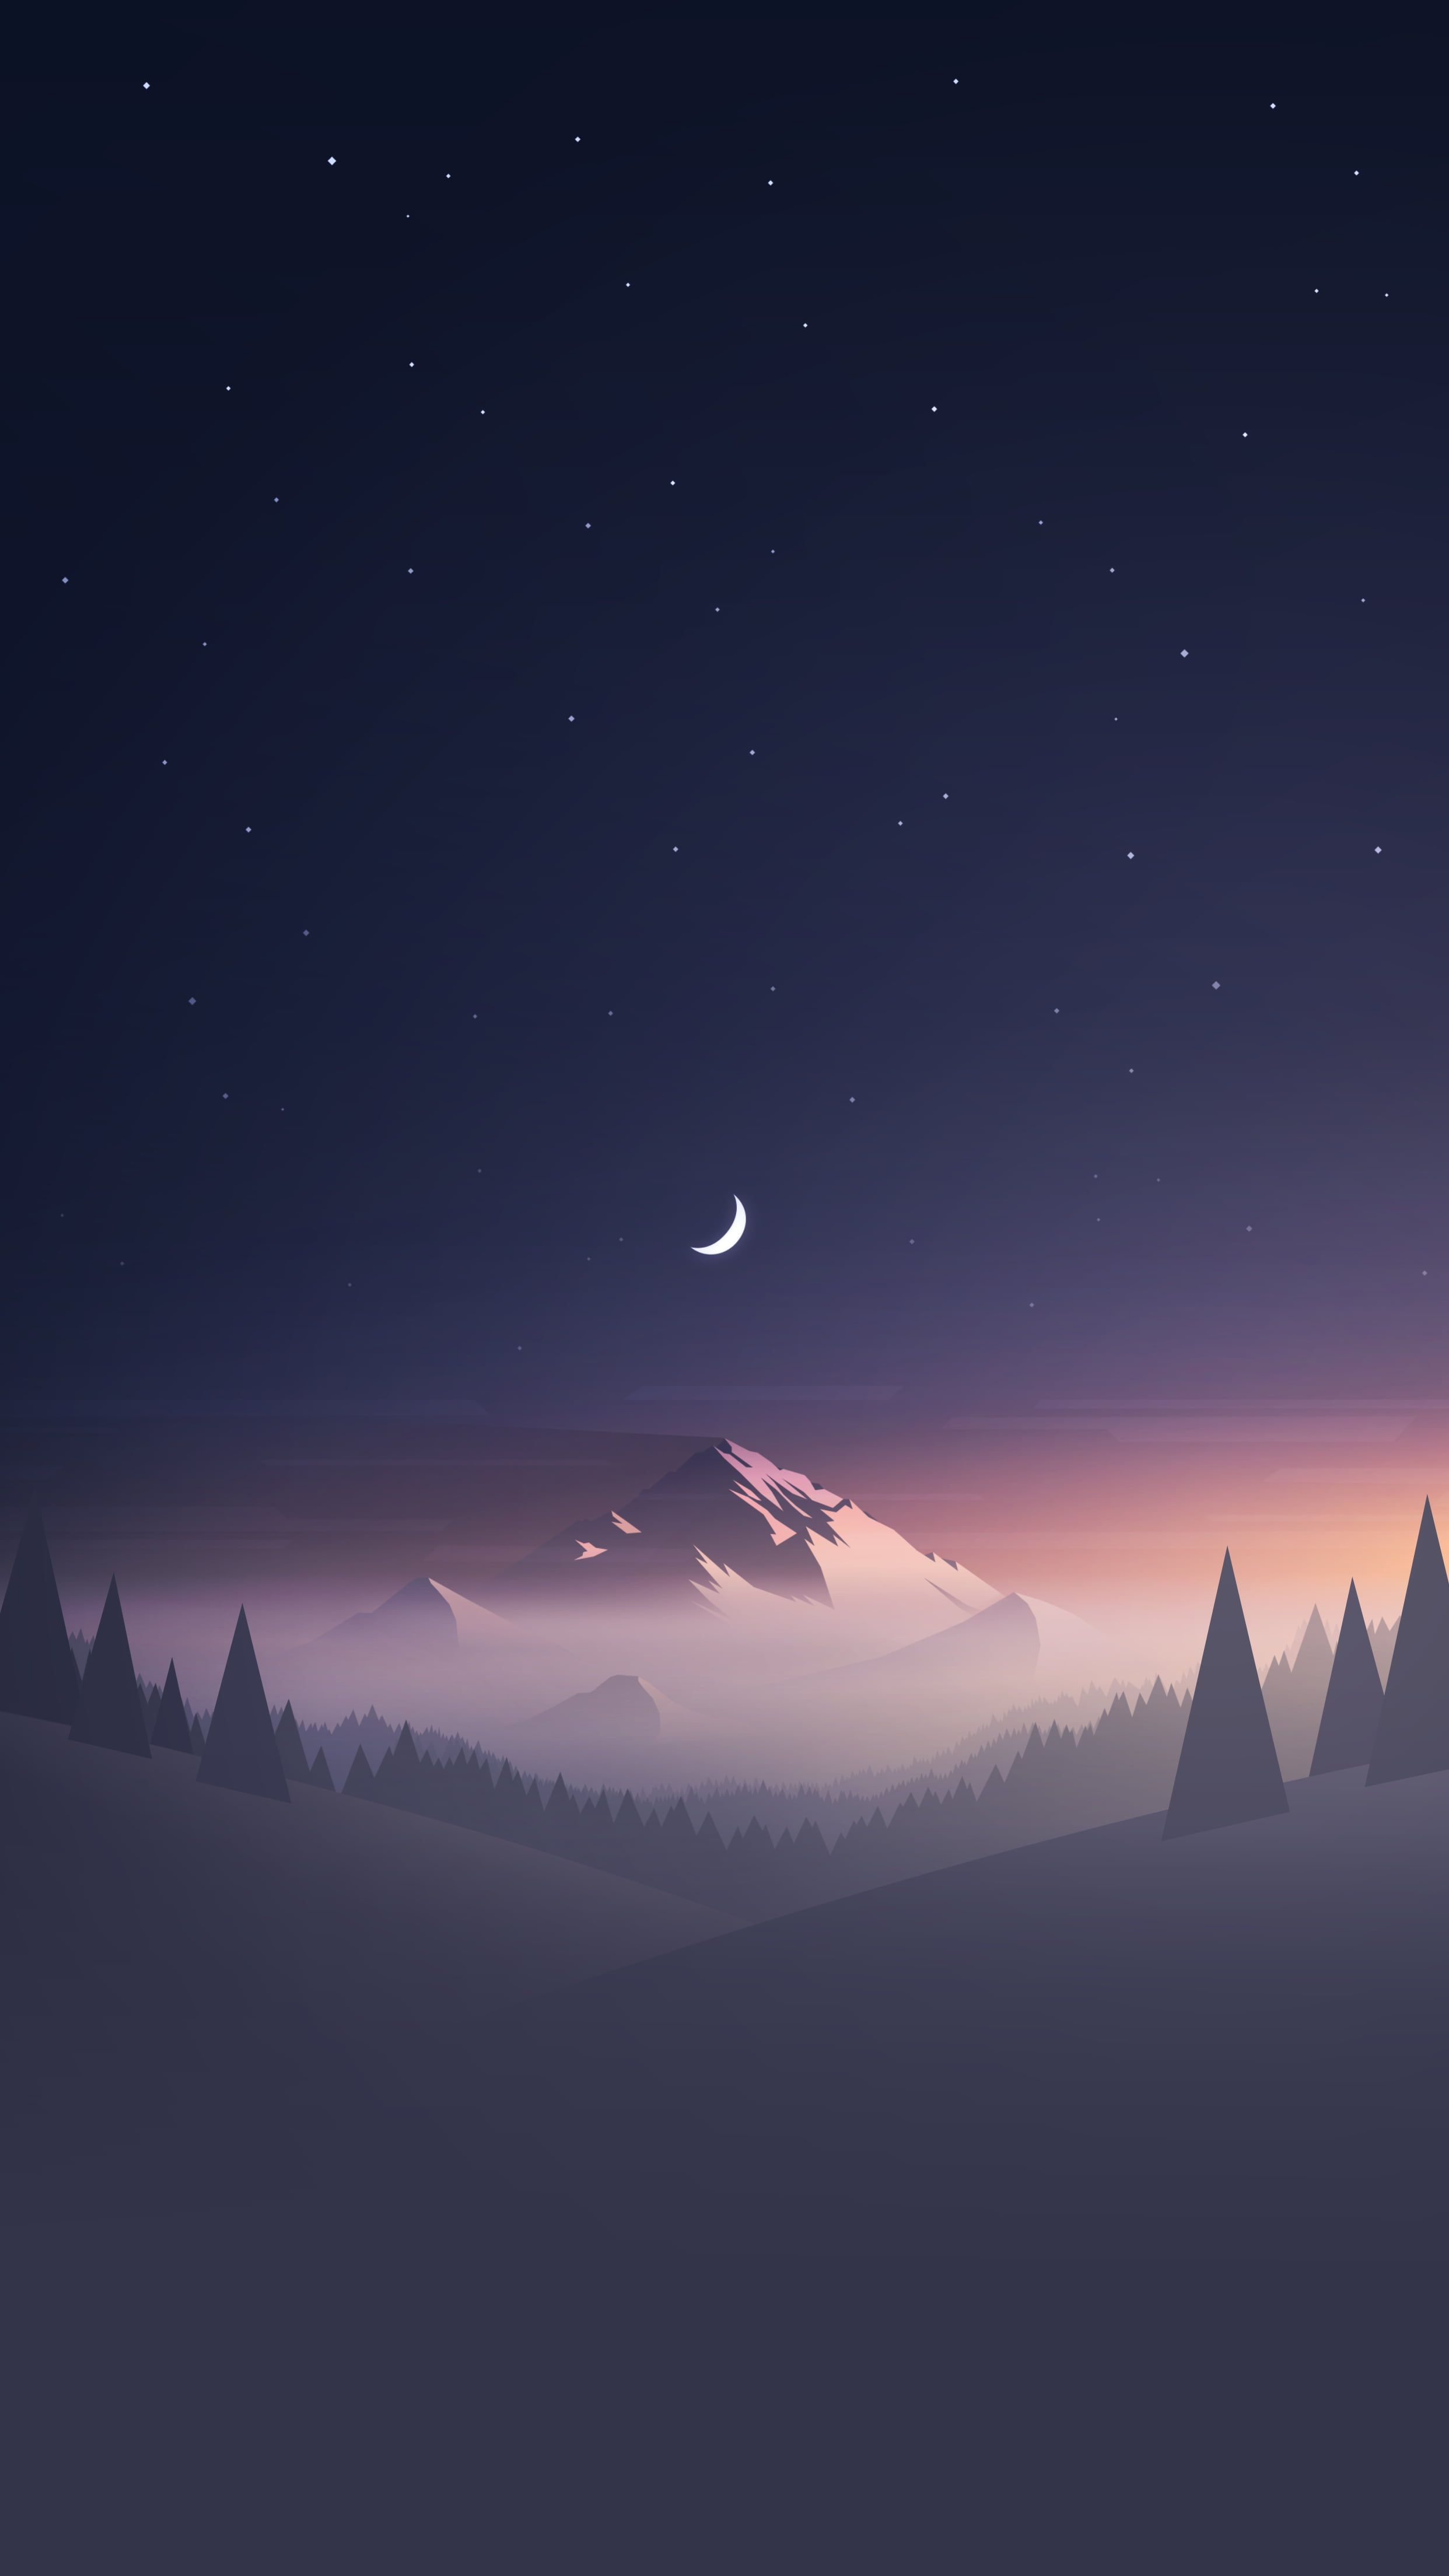 Mountain And Trees Under Starry Sky Illustration Mountain Surrounding Trees Photo Digital Art Natur Art Wallpaper Minimalist Wallpaper Landscape Illustration